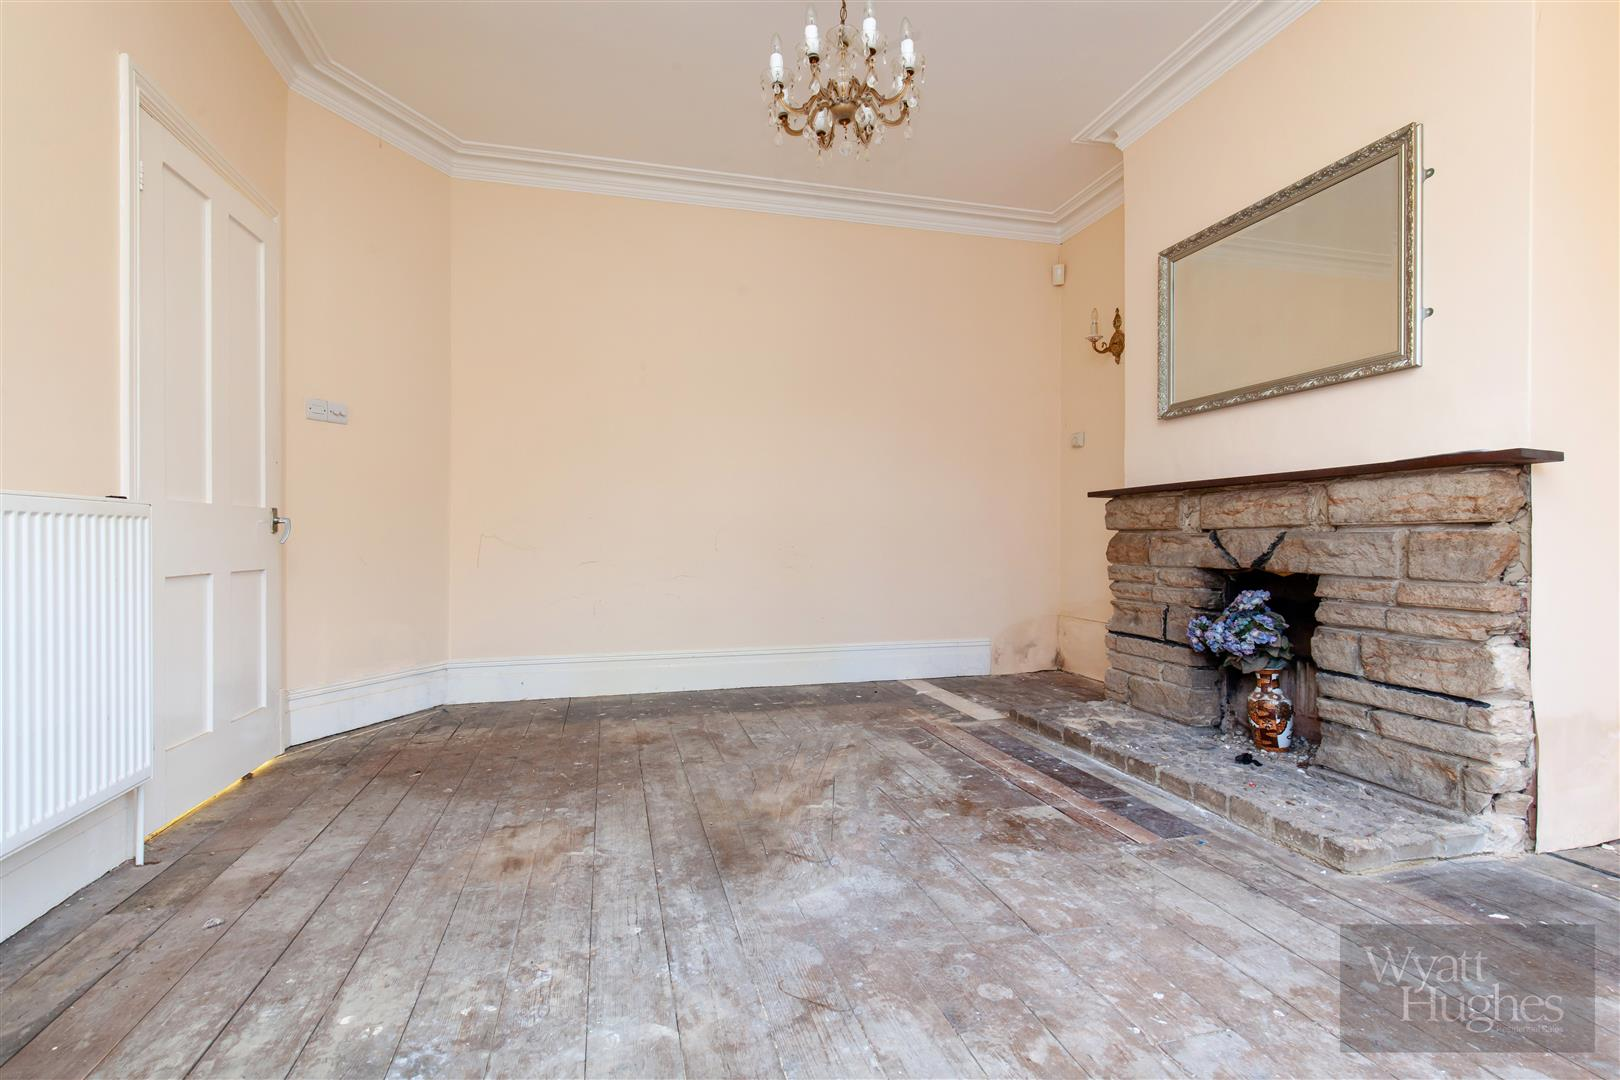 3 bed end-of-terrace-house for sale in Burry Road, St. Leonards-On-Sea 18